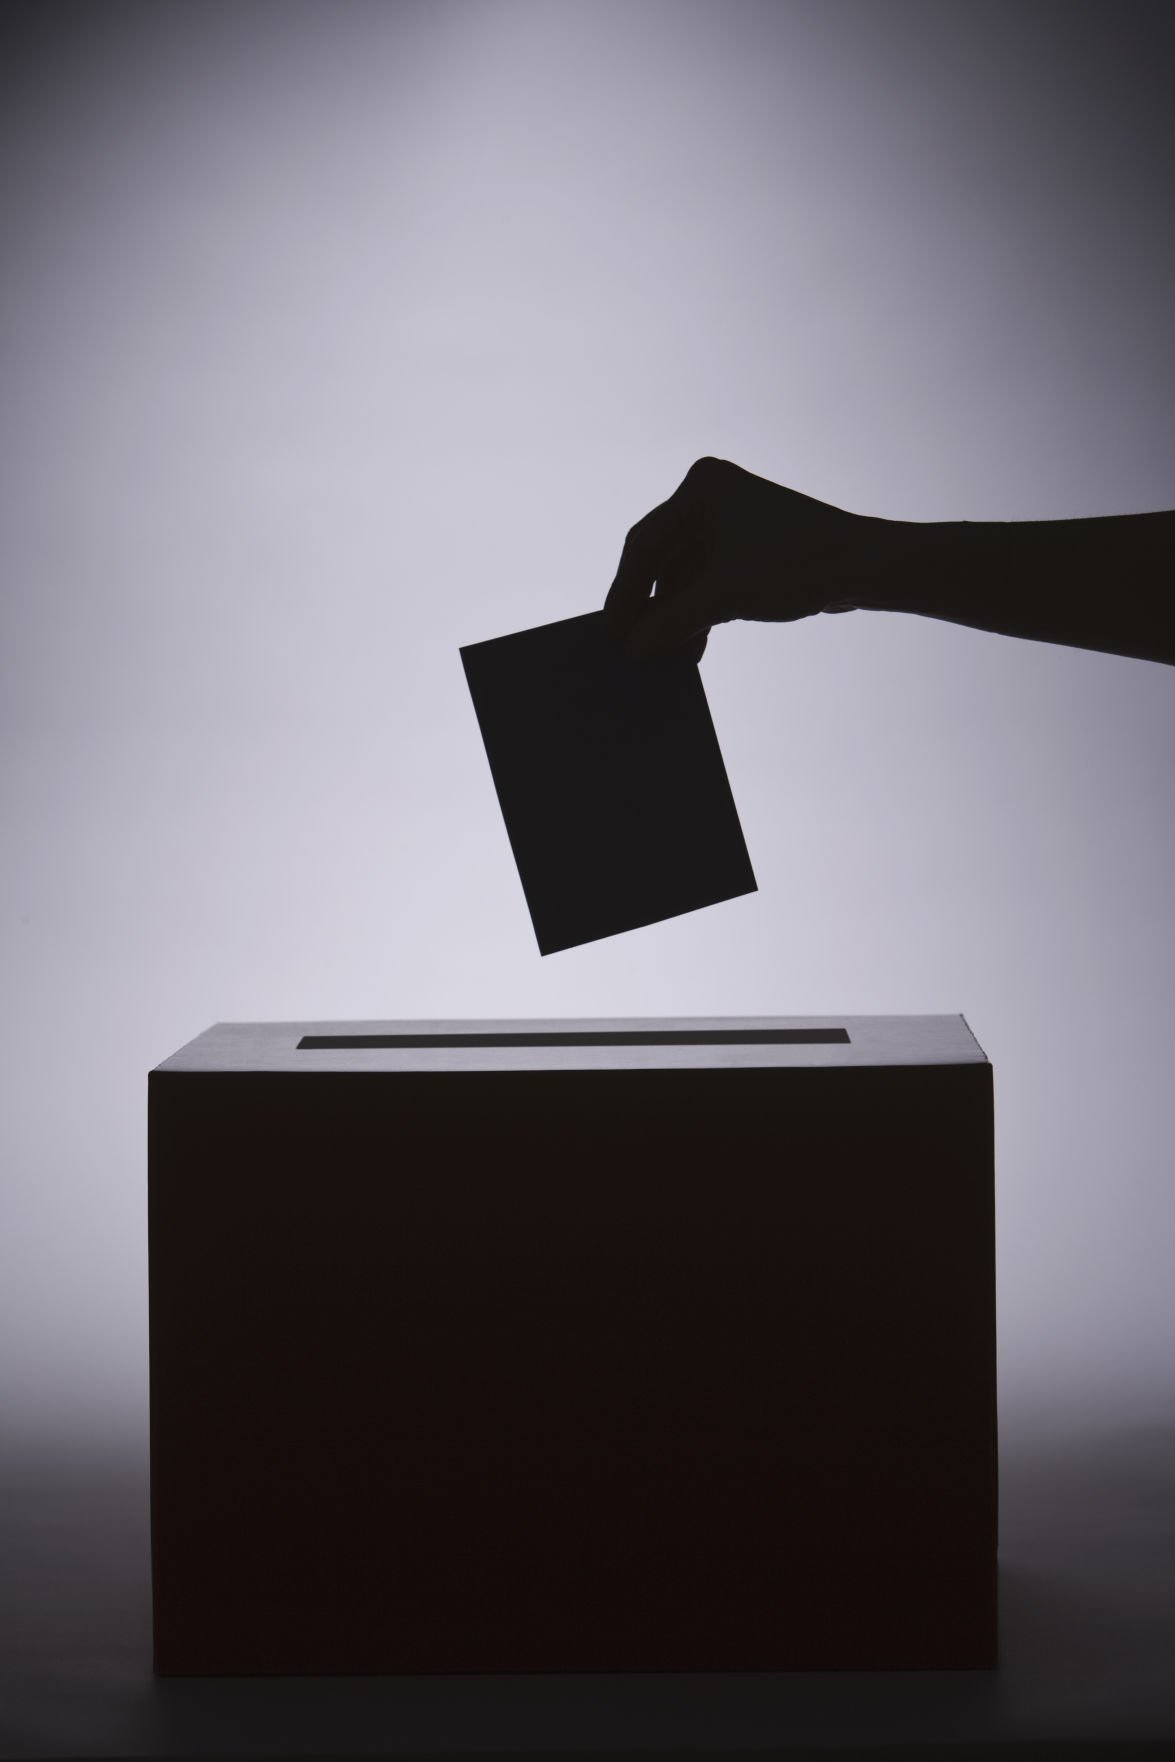 Investigation launched after dead people are registered to vote in Harrisonburg